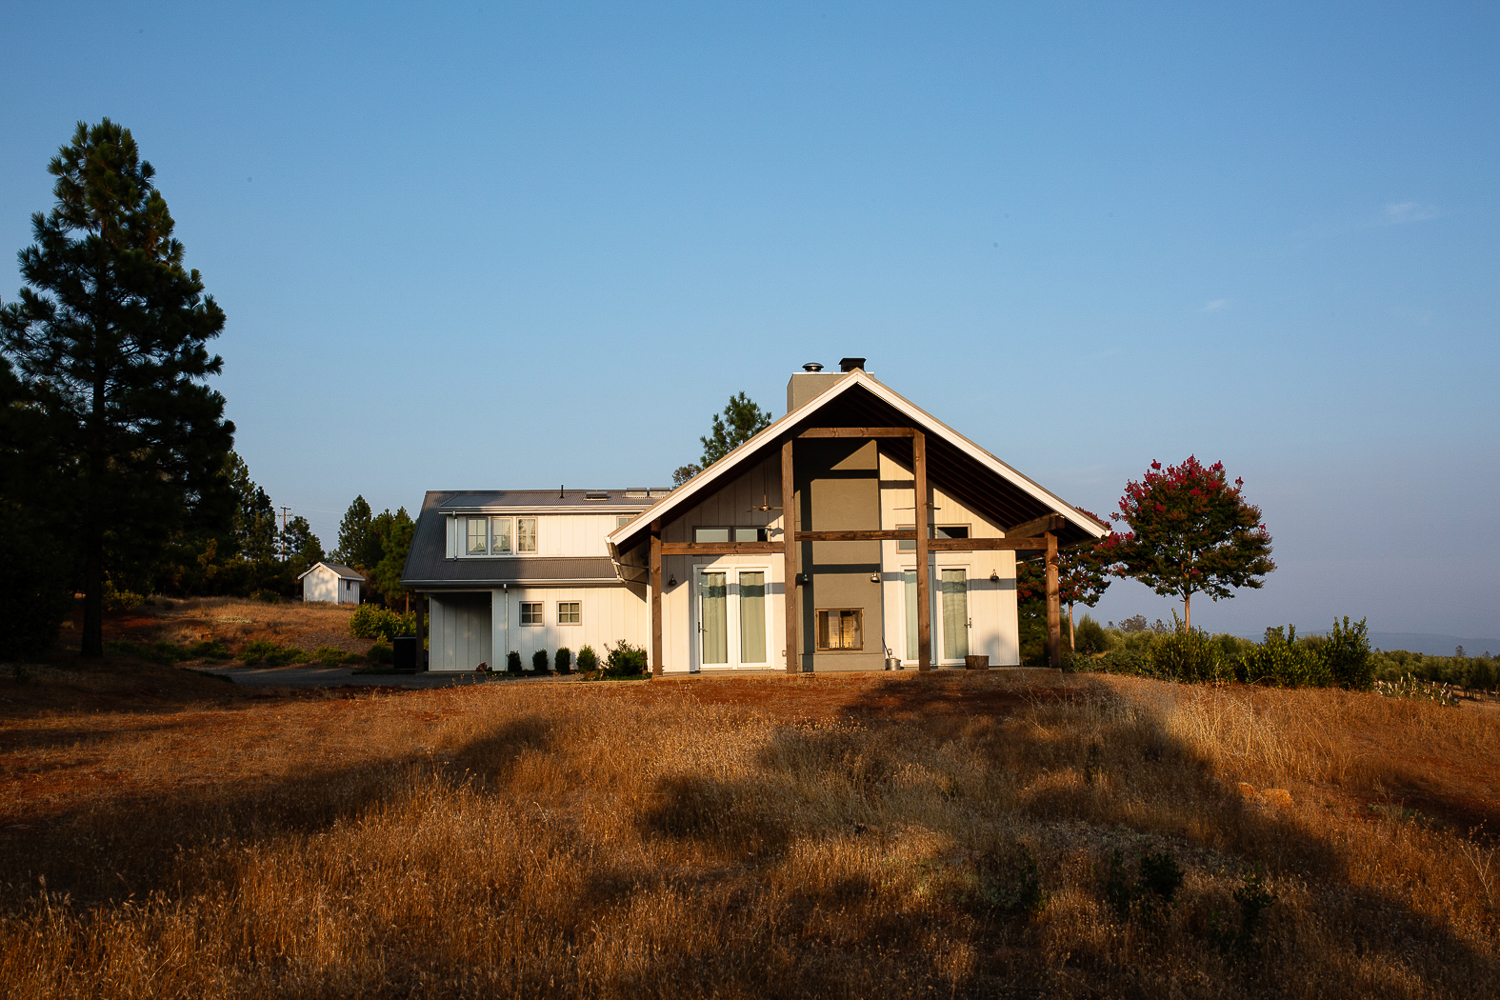 Wine Country architectural photographers Ella Bessette. Barn style residence with natural landscaping